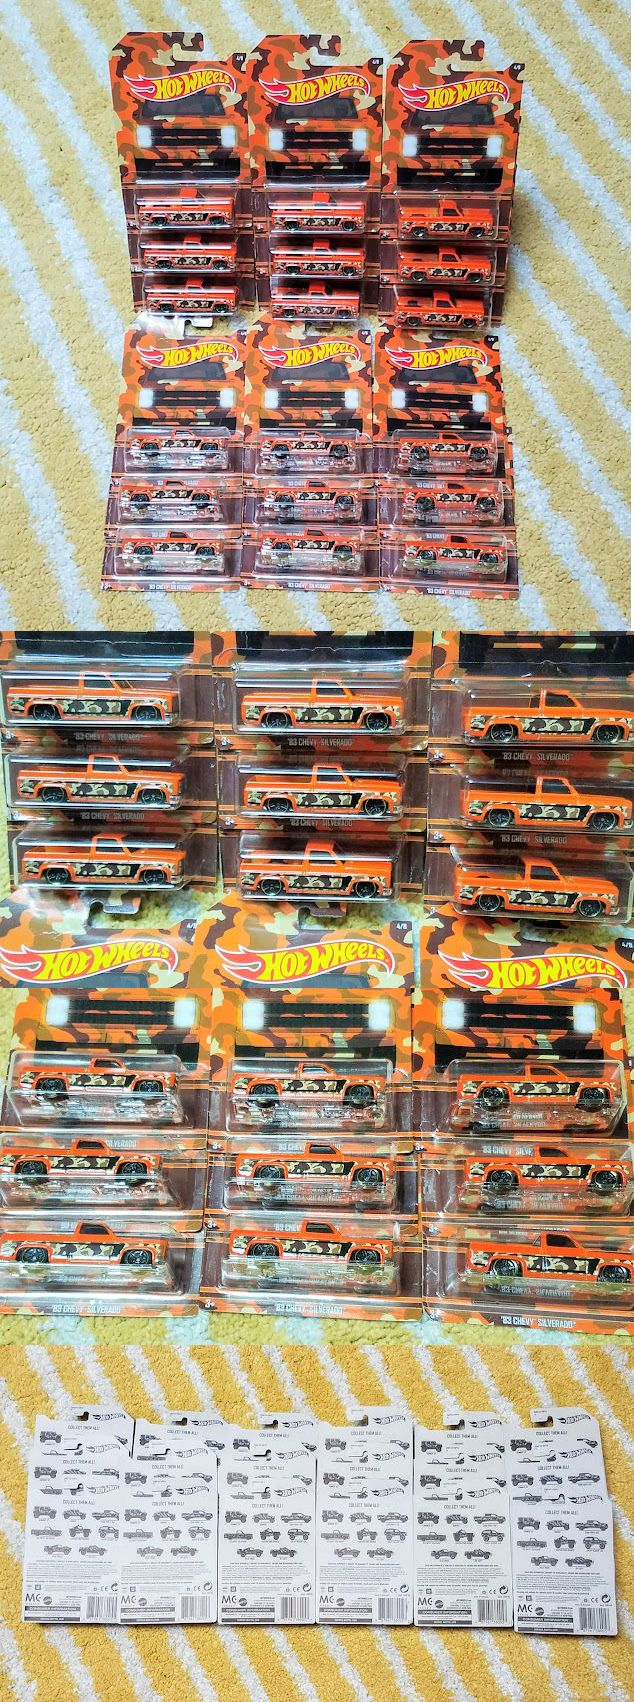 Contemporary manufacture 180506 lot of 18 hot wheels walmart camouflage camo set 2017 83 chevy